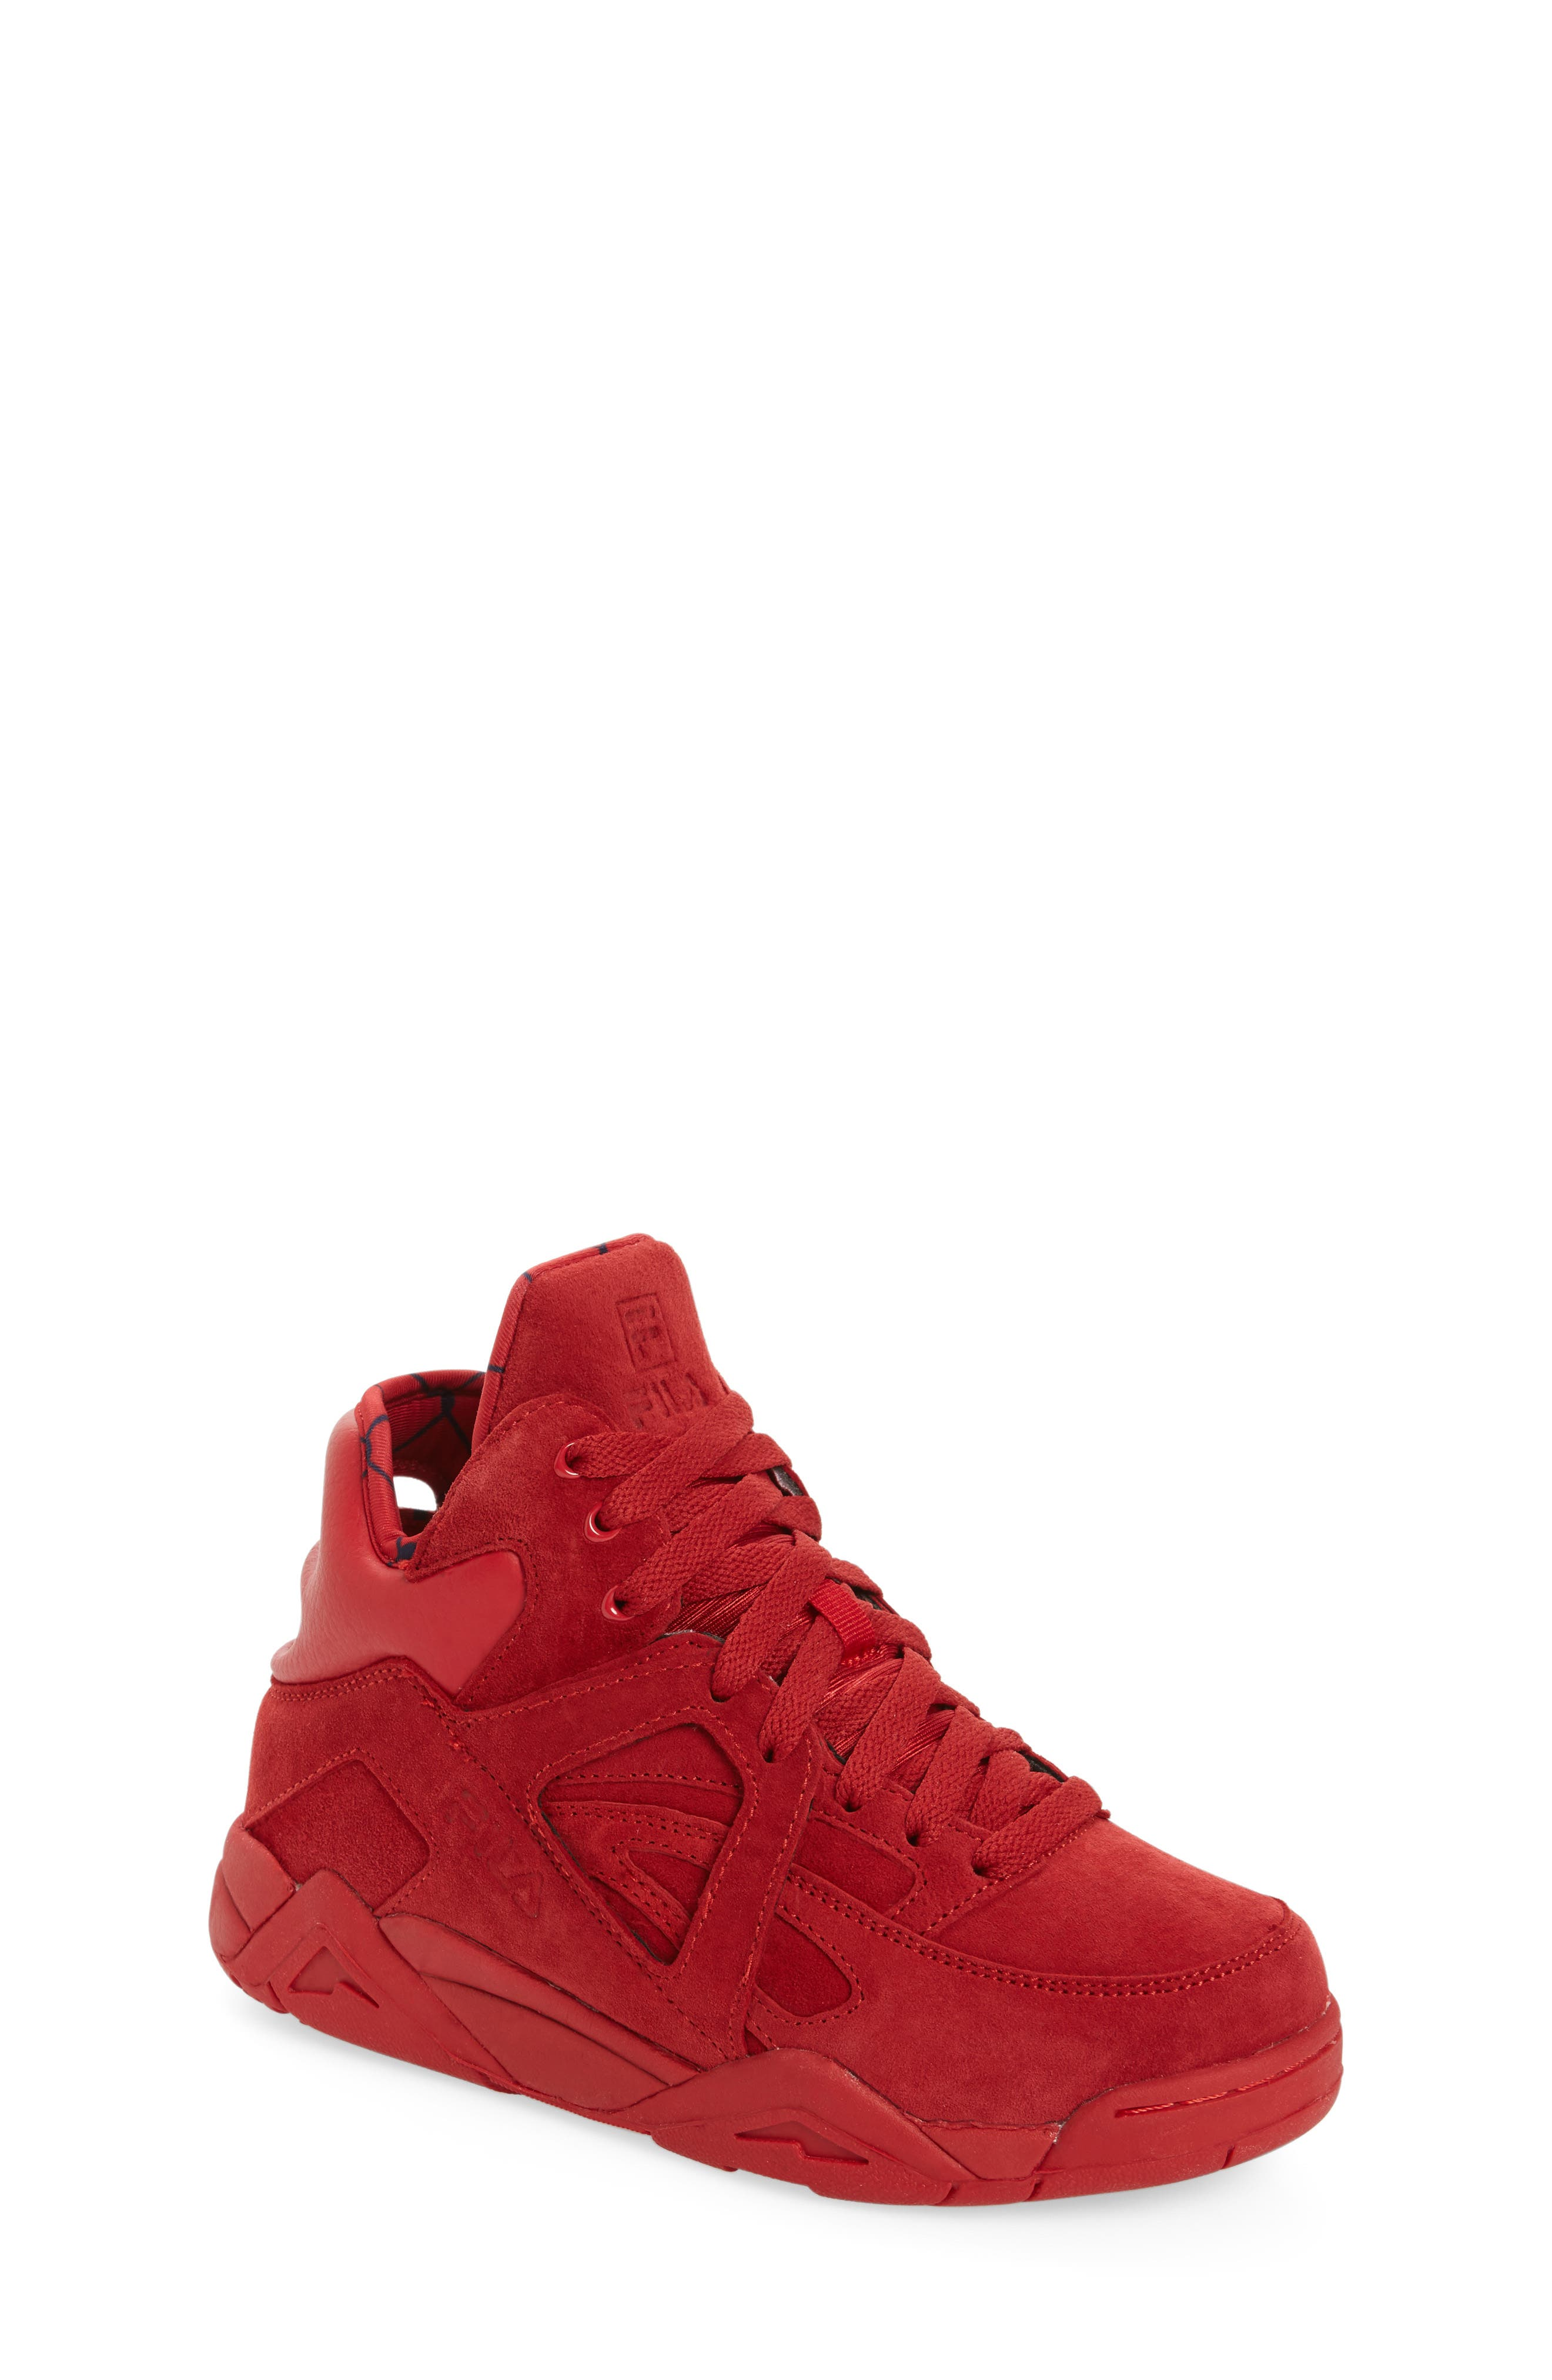 FILA, The Cage High Top Sneaker, Main thumbnail 1, color, RED SUEDE